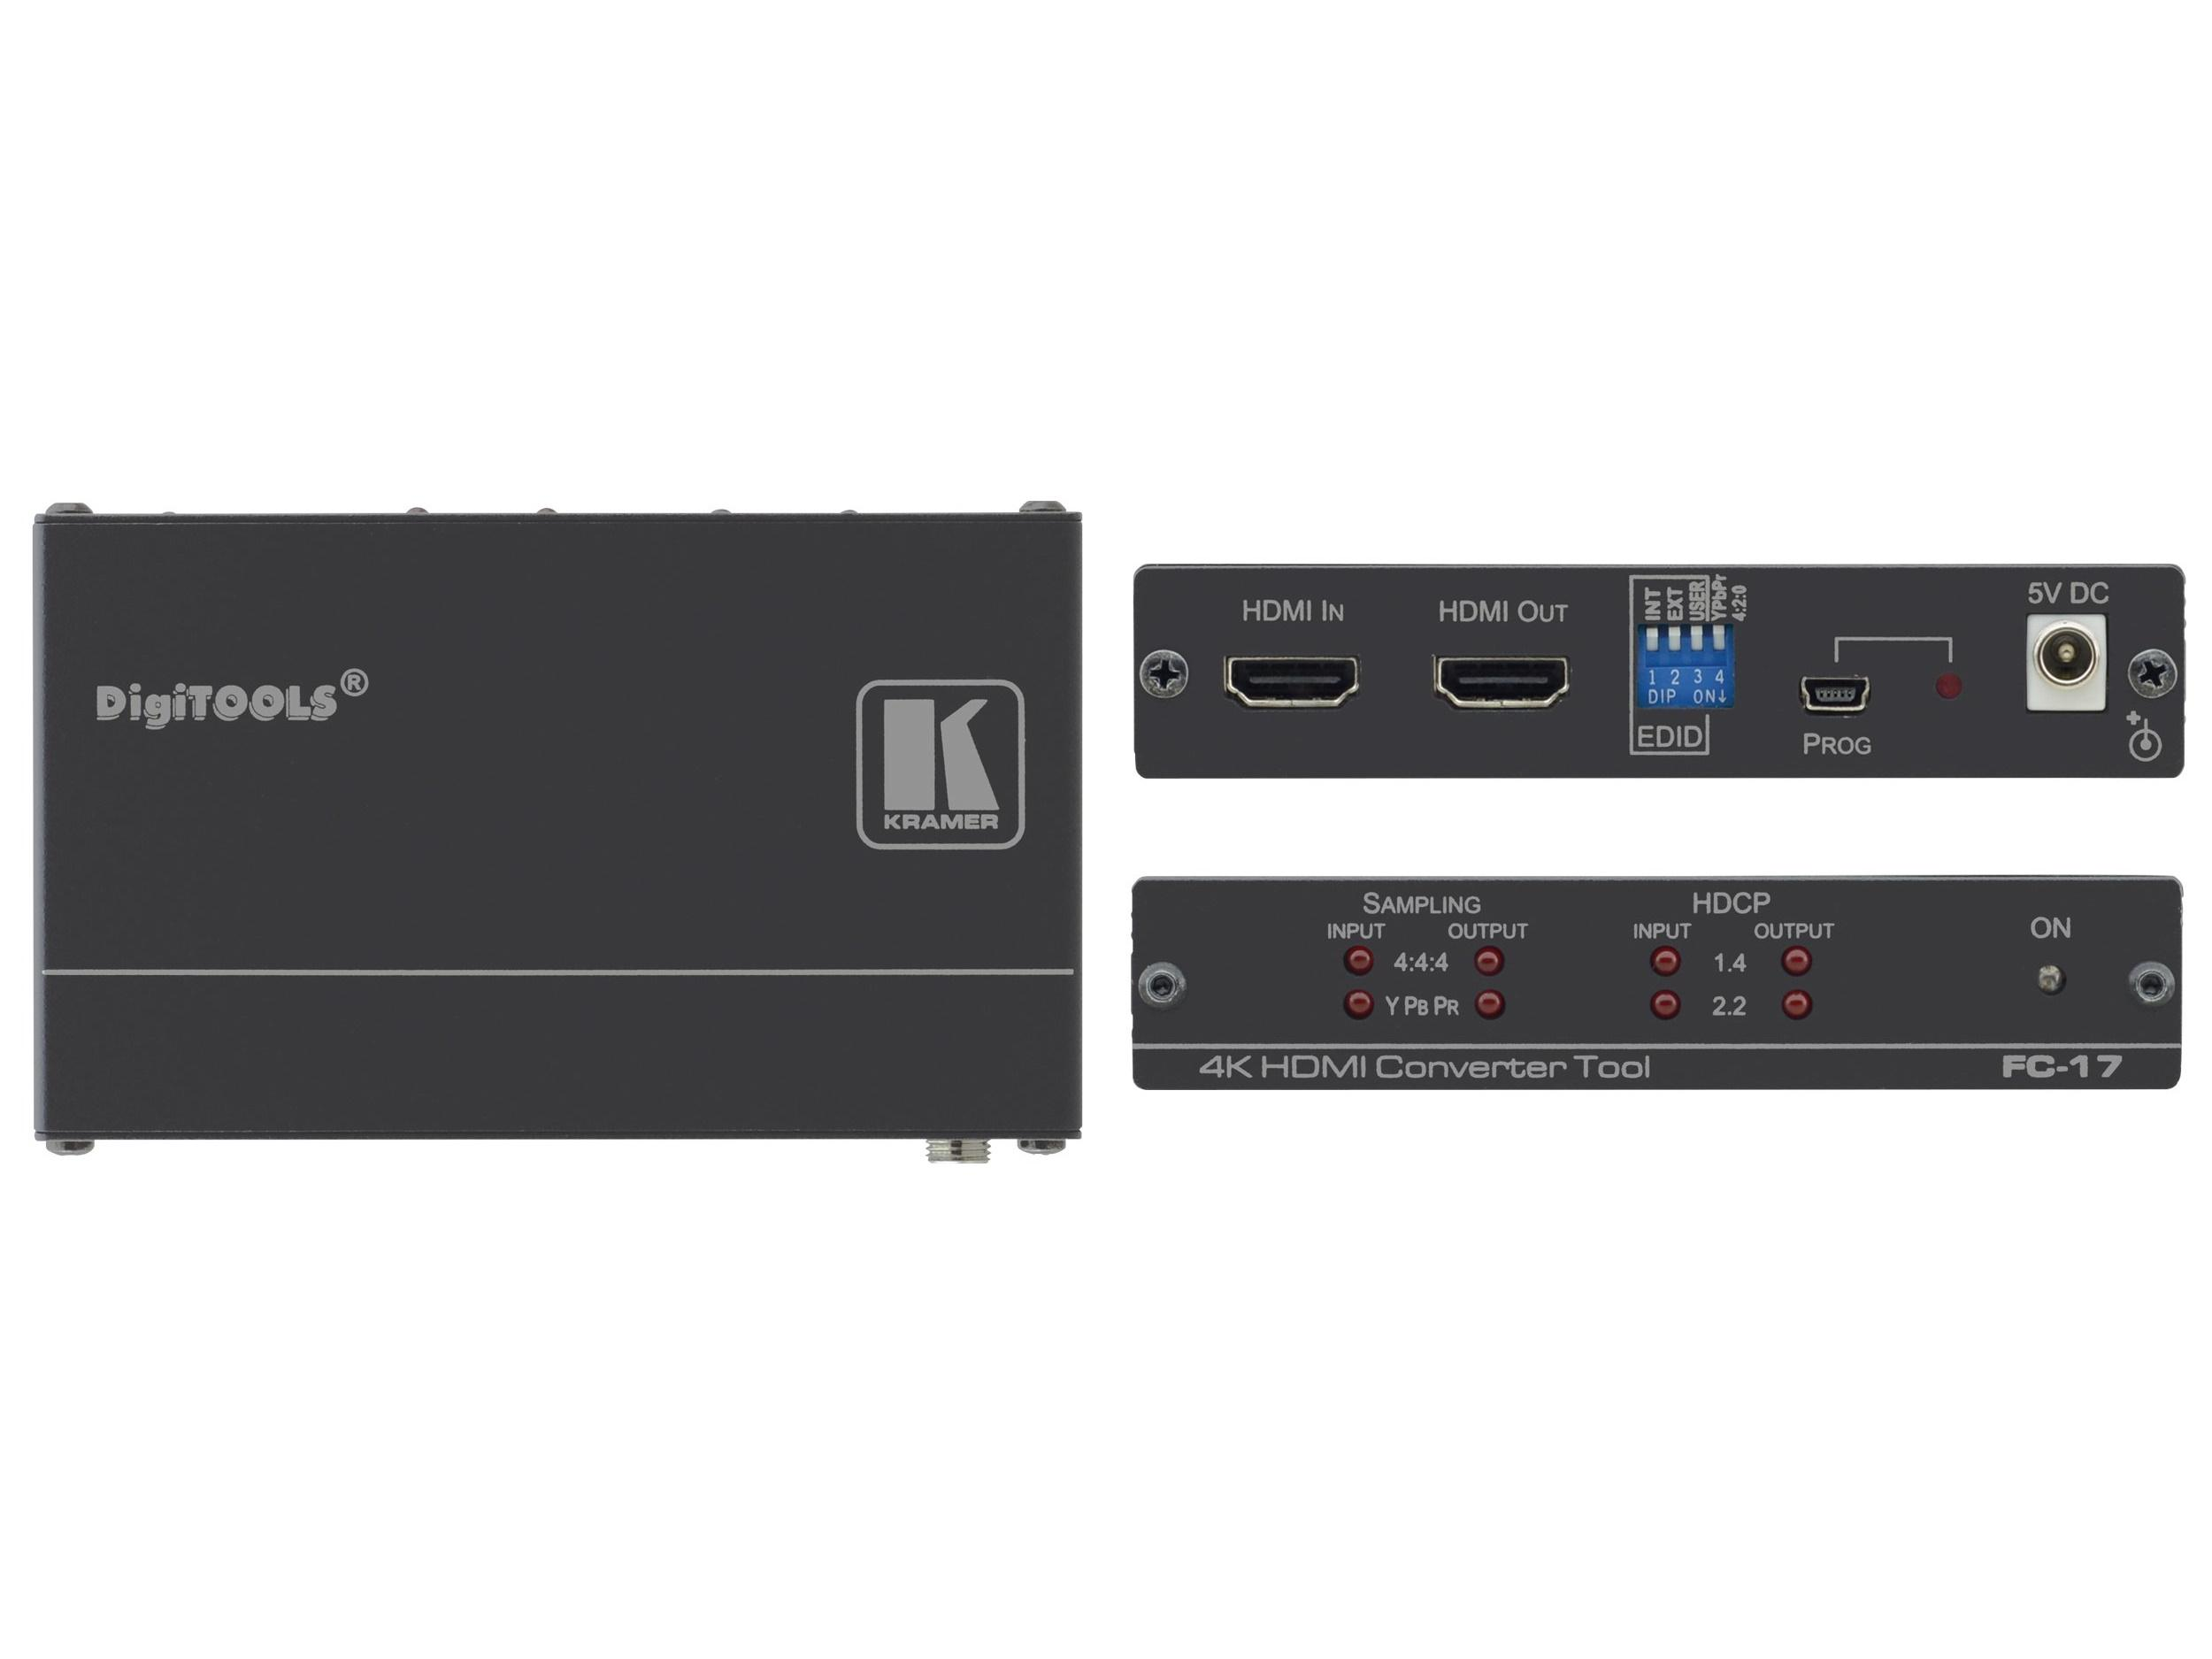 Kramer FC-17 HDMI 4K/60 4x4x4 / 4x2x0 Converter with HDCP 1.4 and 2.2